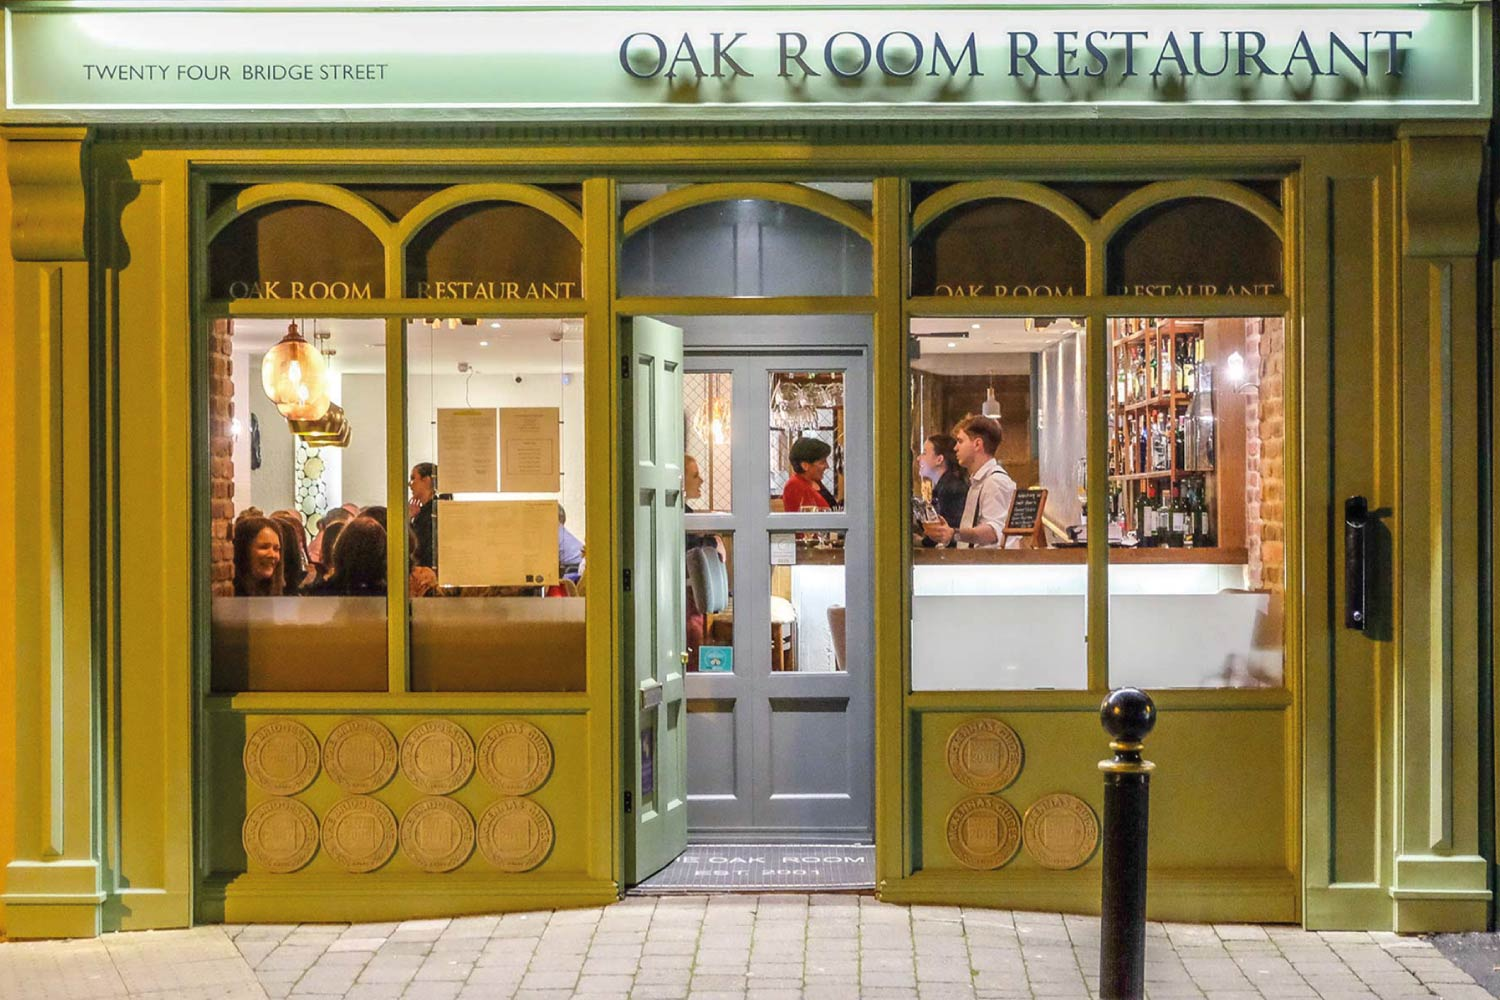 Oak rooms restaurant fit-out